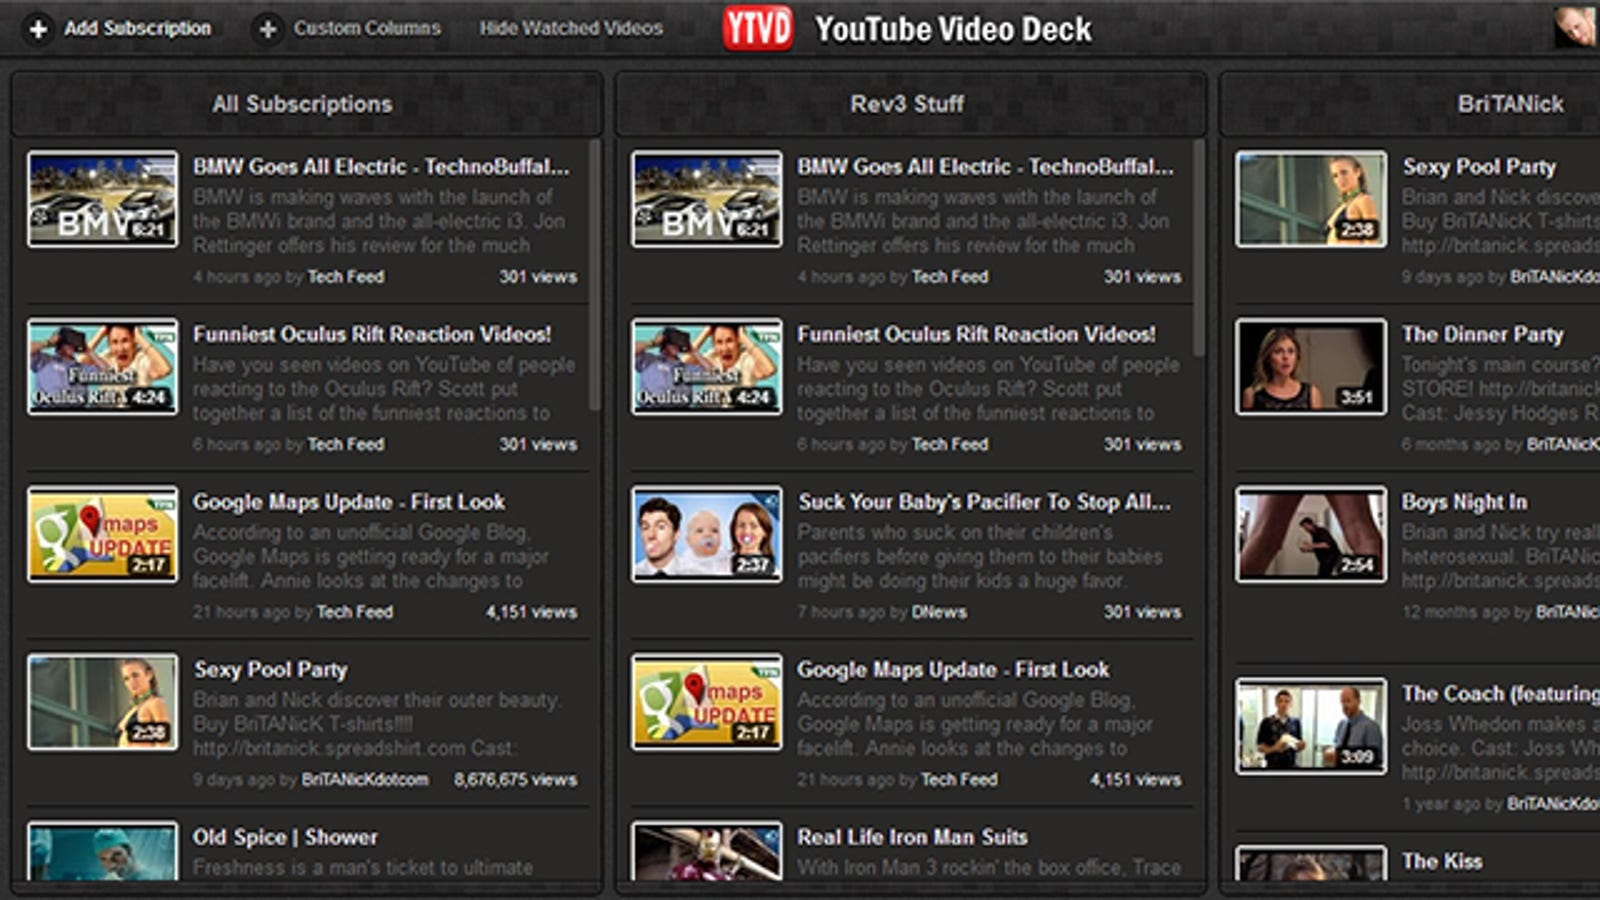 YouTube Video Deck Manages Your Video Subscriptions